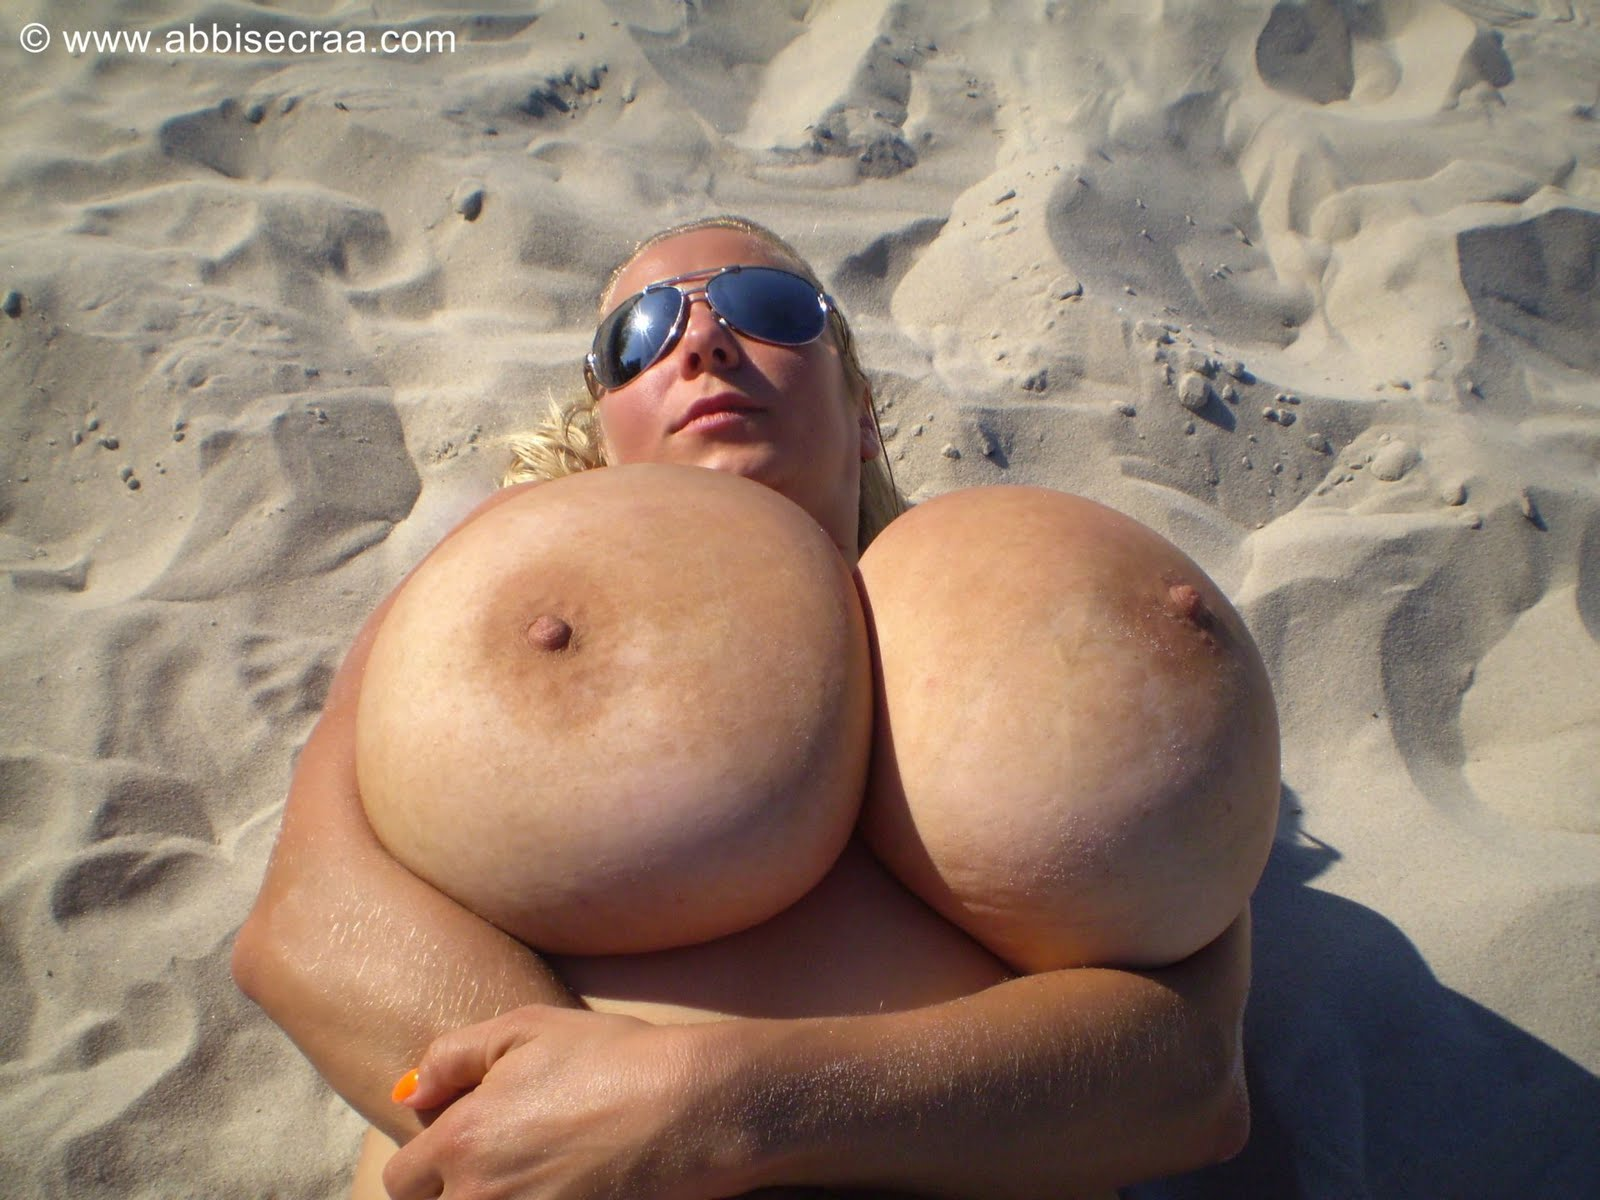 Ass huge hot boobs topless on the beach and